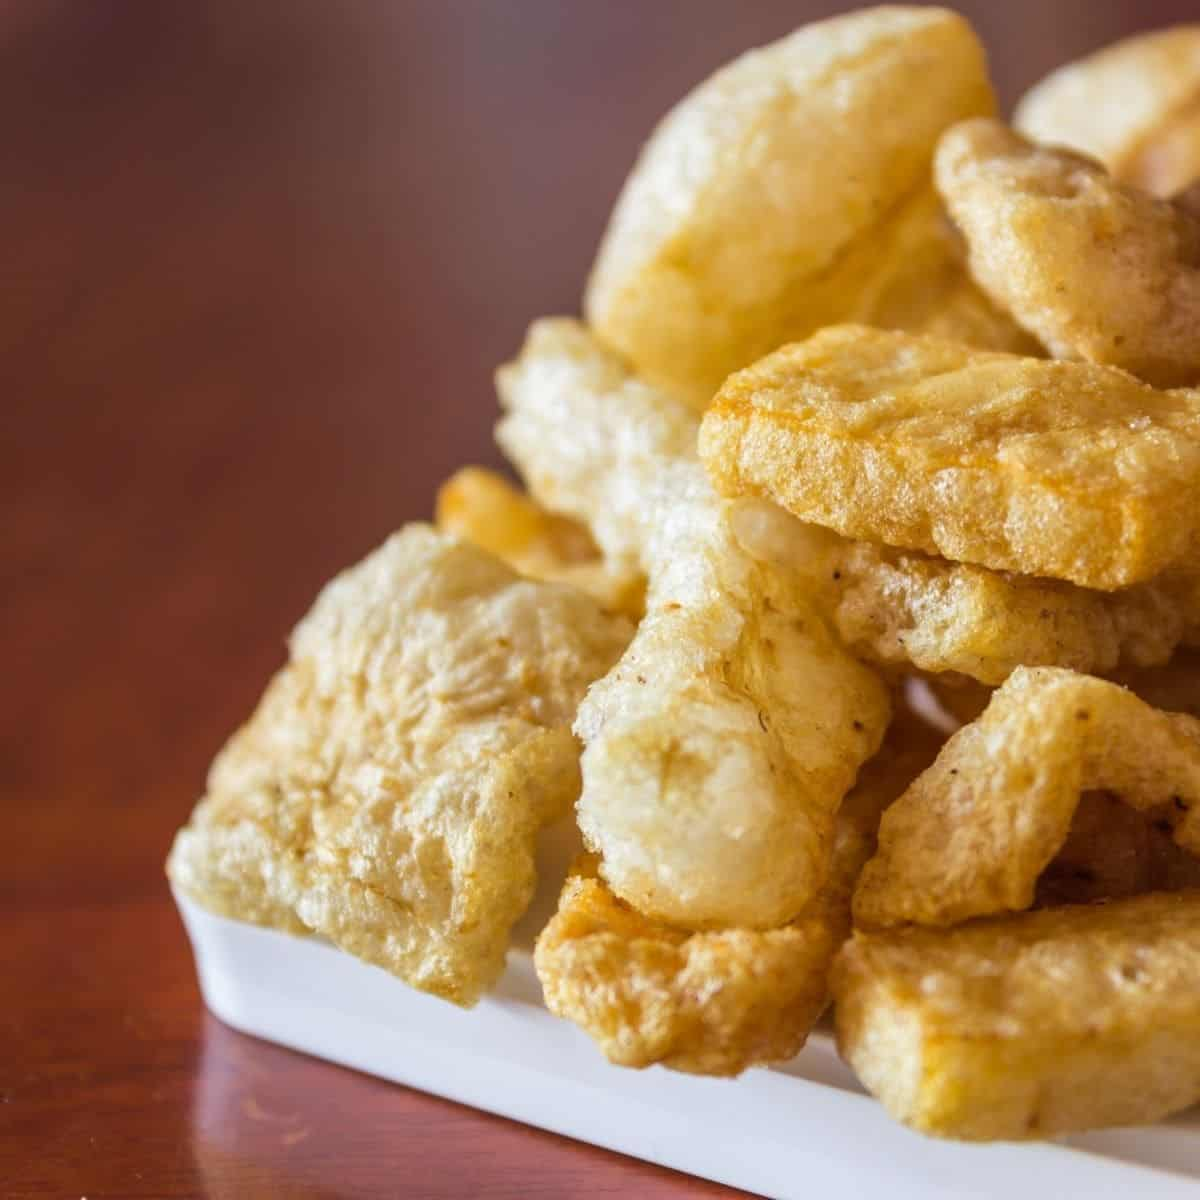 pork rinds for keto on a plate